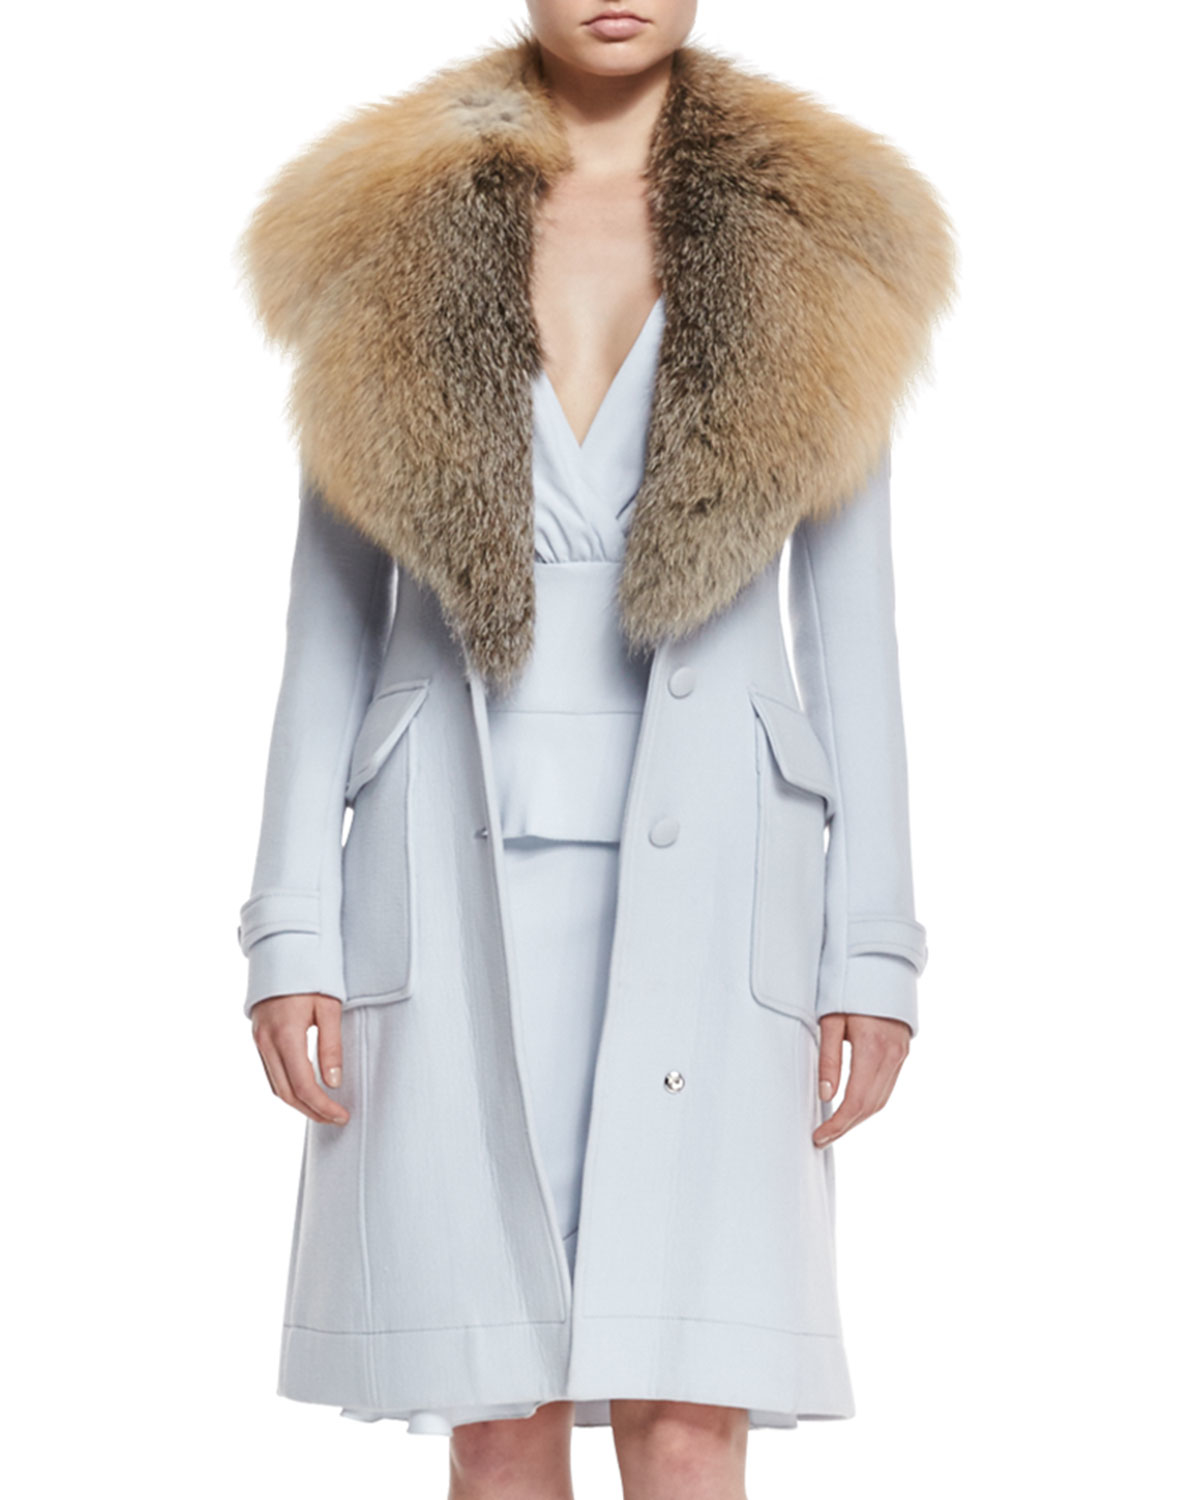 Find great deals on eBay for wool fur coat. Shop with confidence.